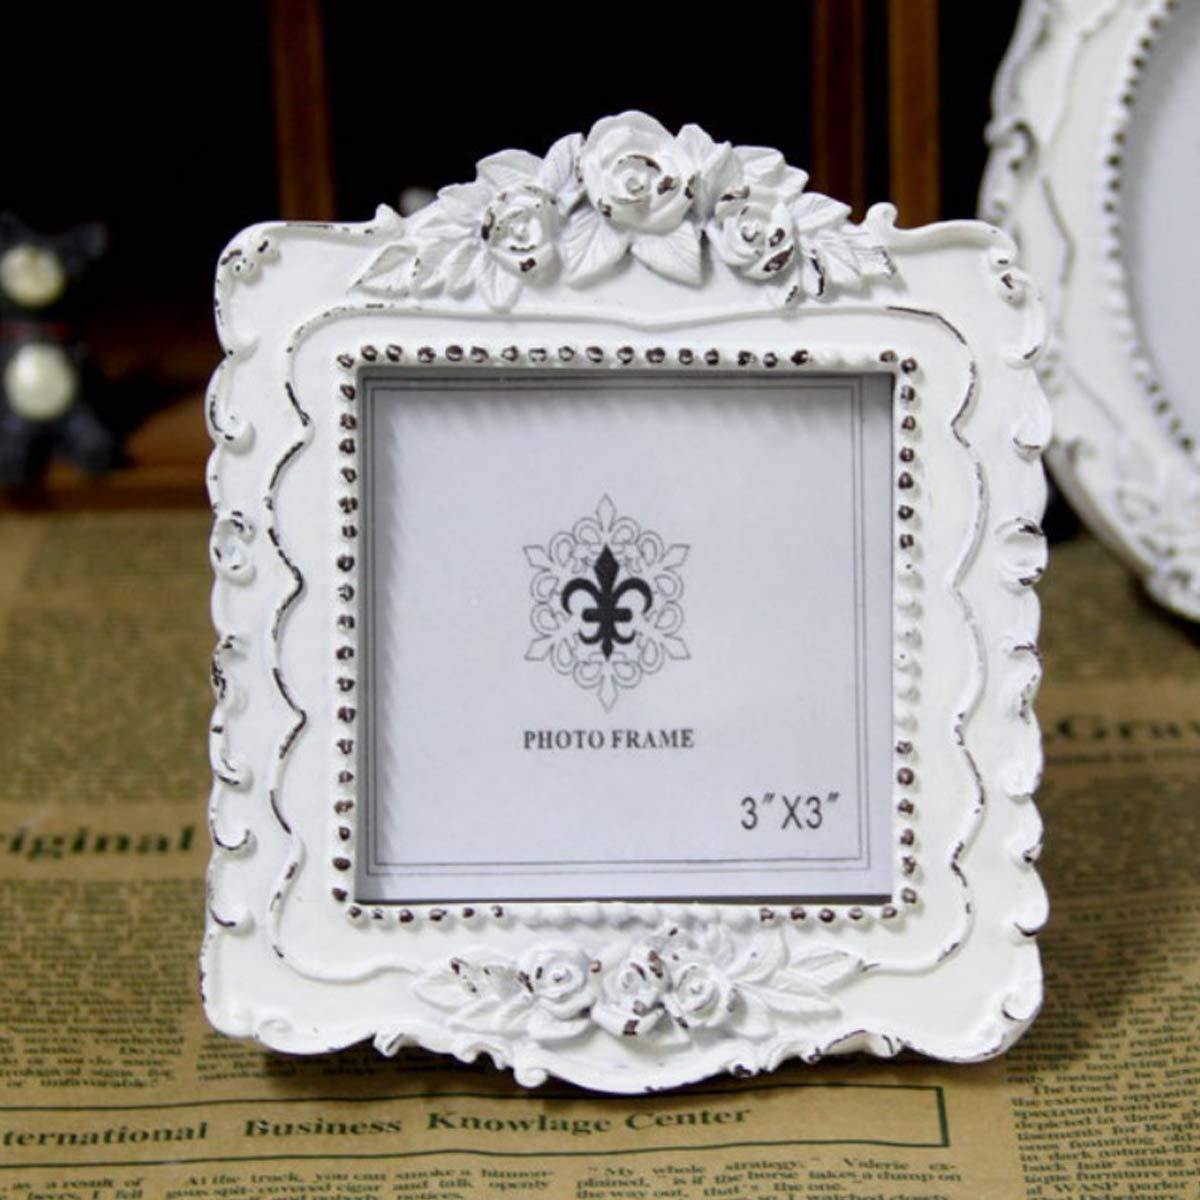 AMHOME Picture Frame 3x3 Square European Style Resin and Wood Frame Creativity Design by AMHOME